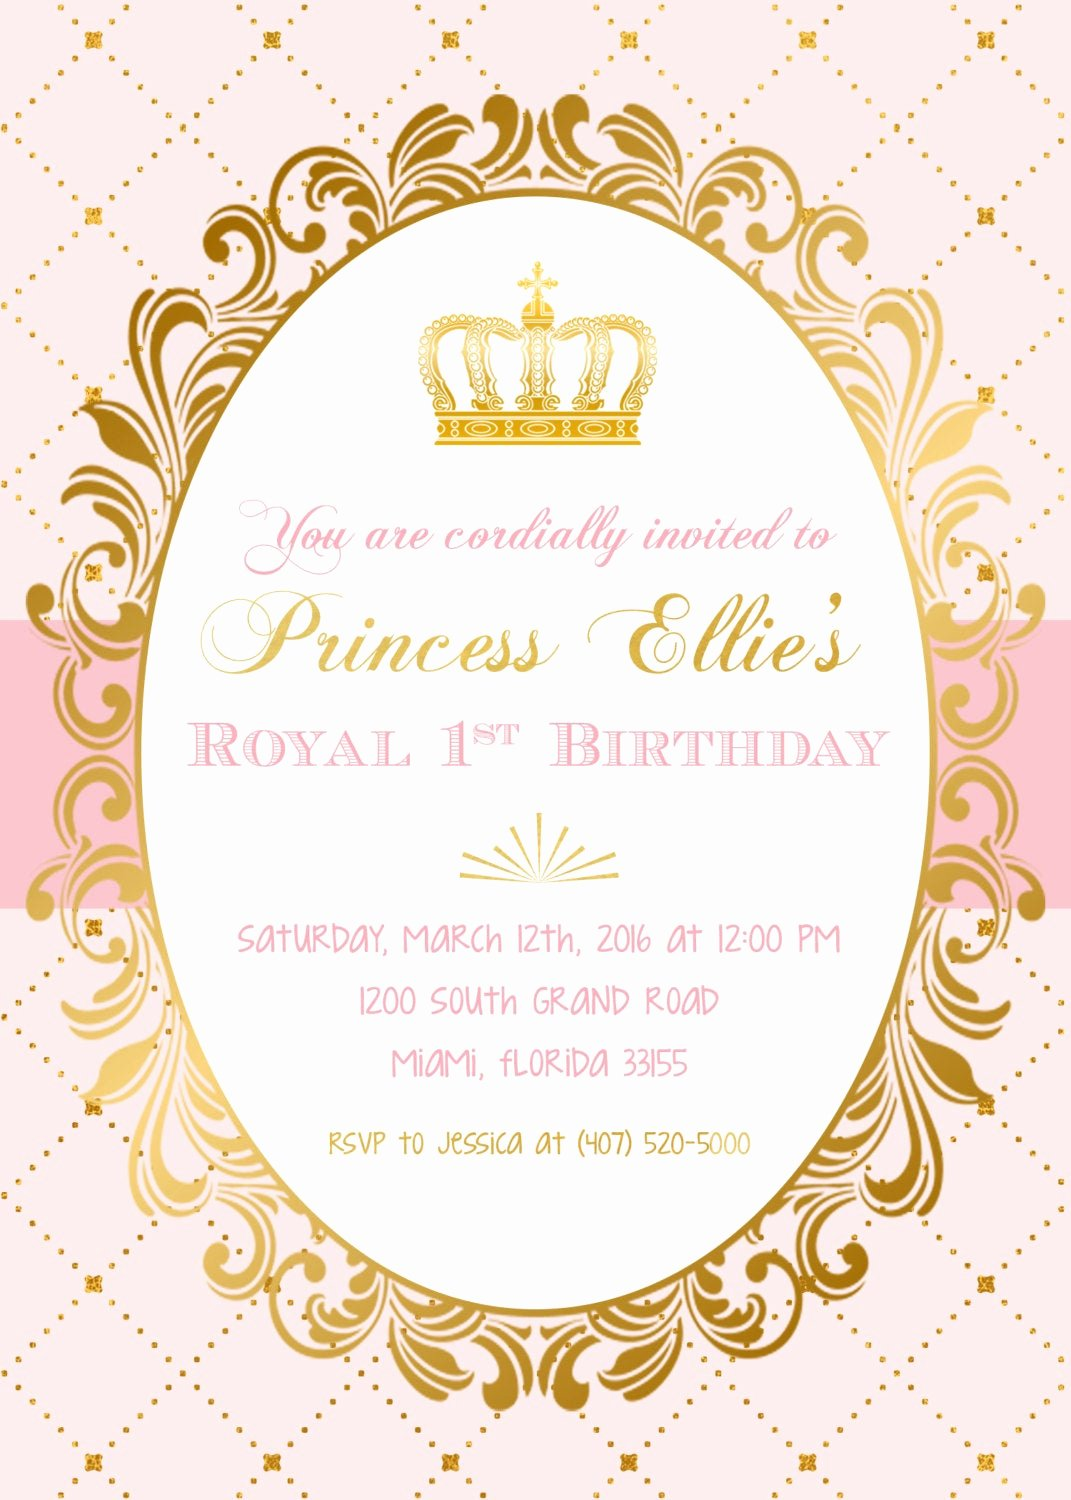 Princess Party Invitation Template Lovely Princess Birthday Invitation Princess Invitation Pink and Gold Invitation Princess Crown